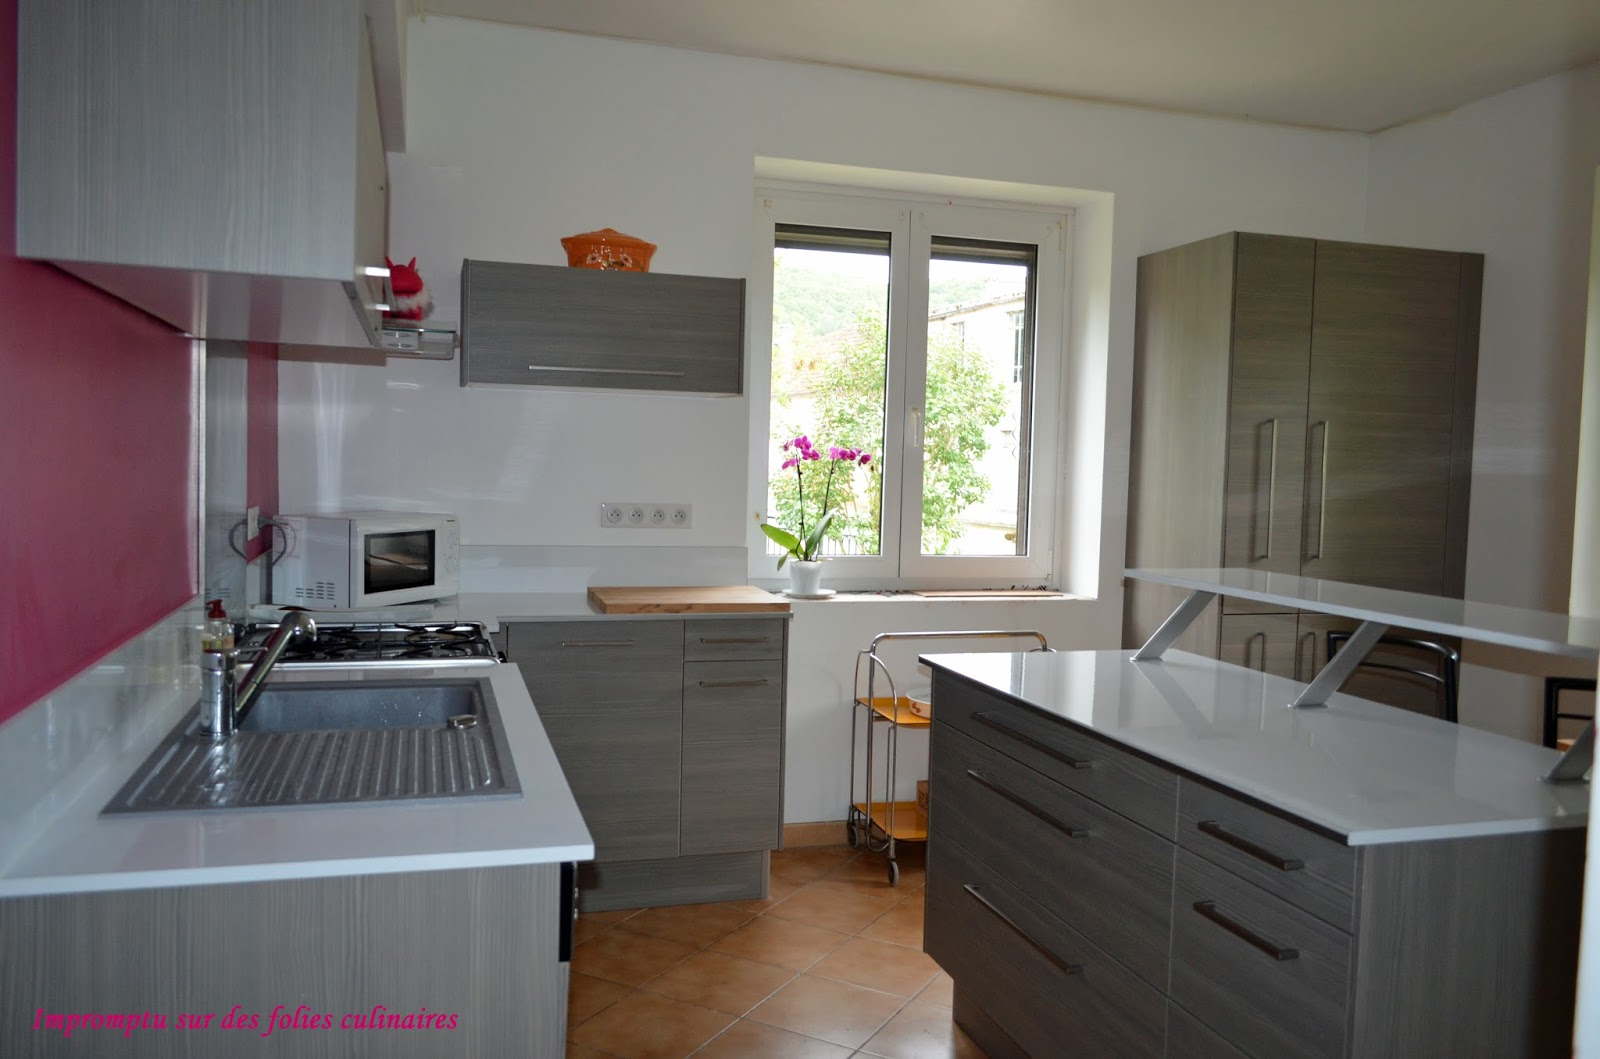 Renovation cuisine rustique chene renovation cuisine for Renovation meuble en chene